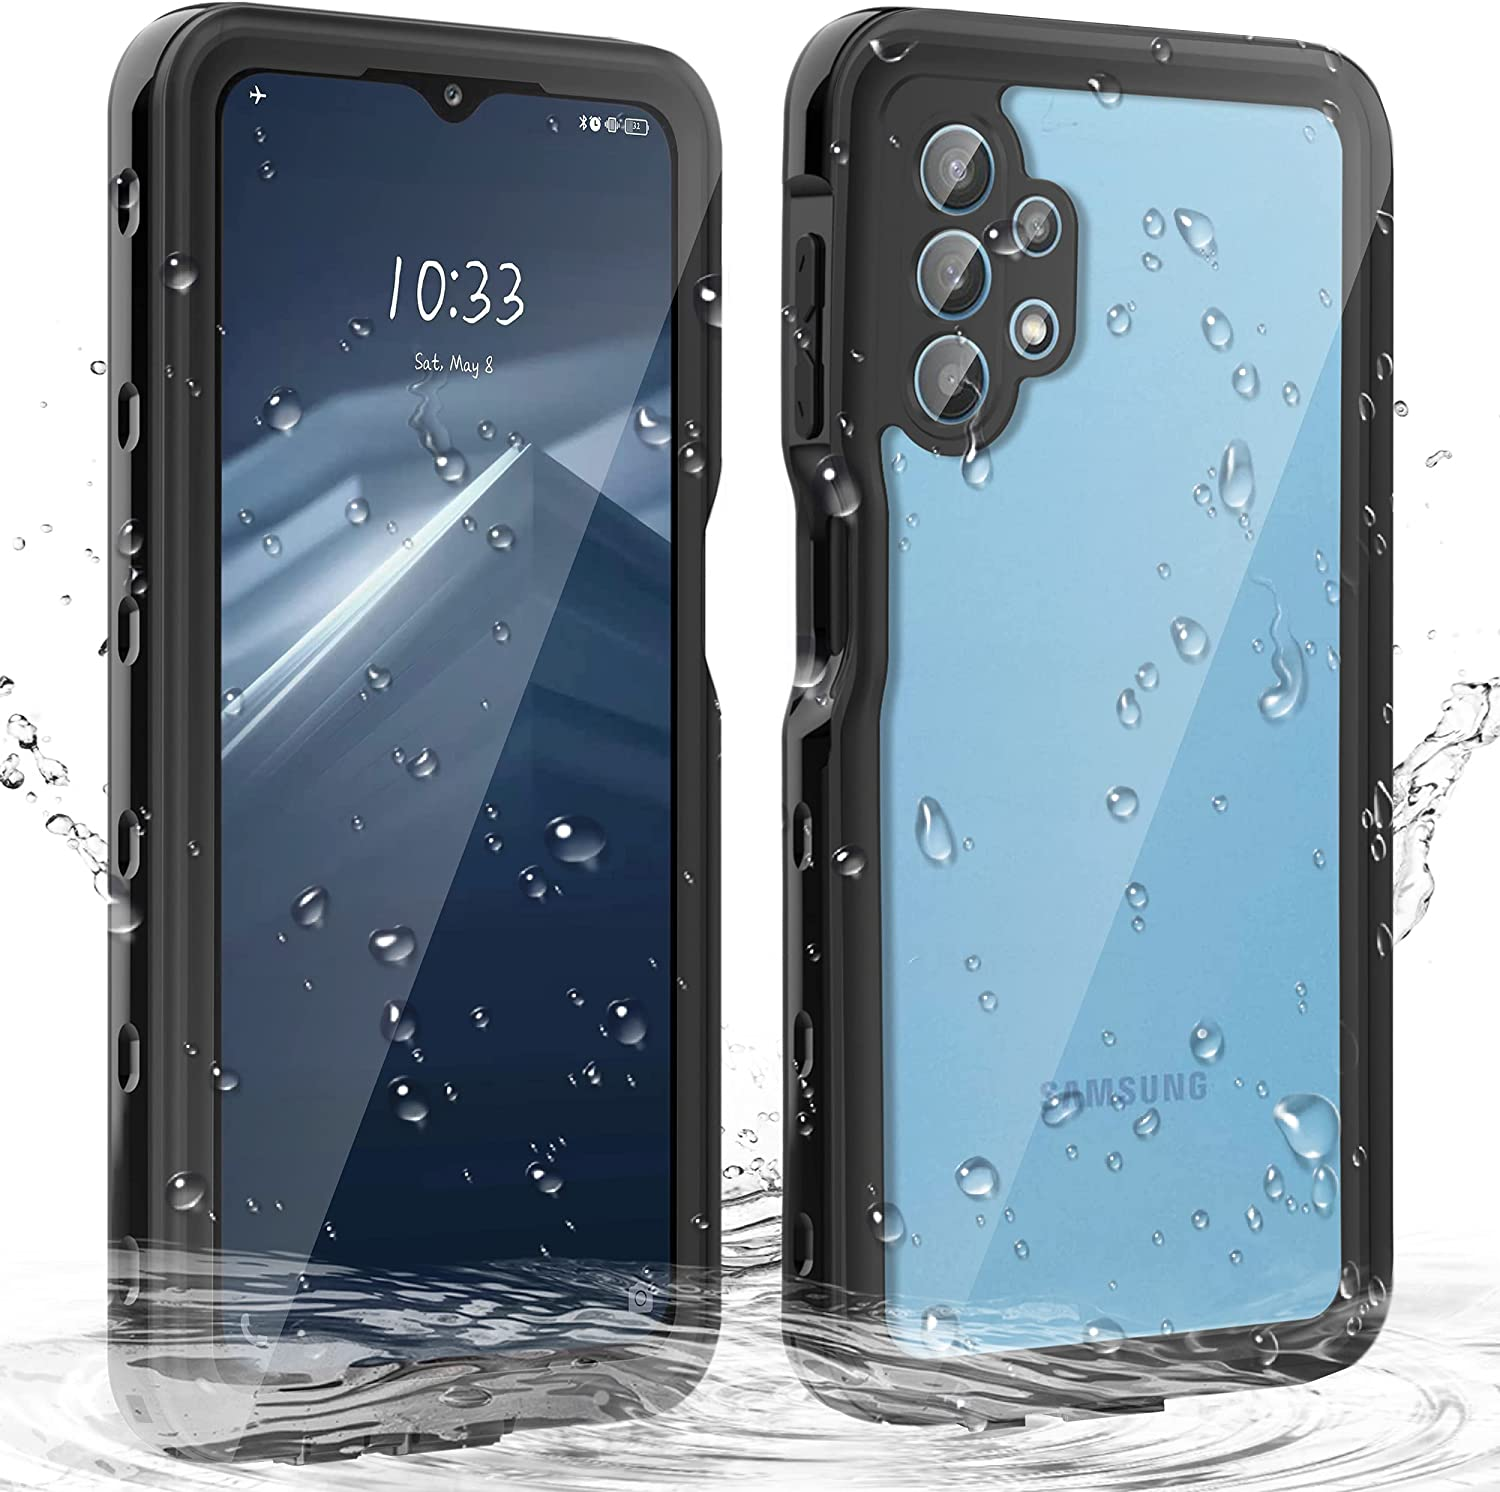 Janazan for Samsung Galaxy A32 Case 5G, Full Body Protective Samsung A32 Waterproof Case with Built-in Screen Protector, Heavy Duty Shockproof Sand Proof for Samsung Galaxy A32 5G